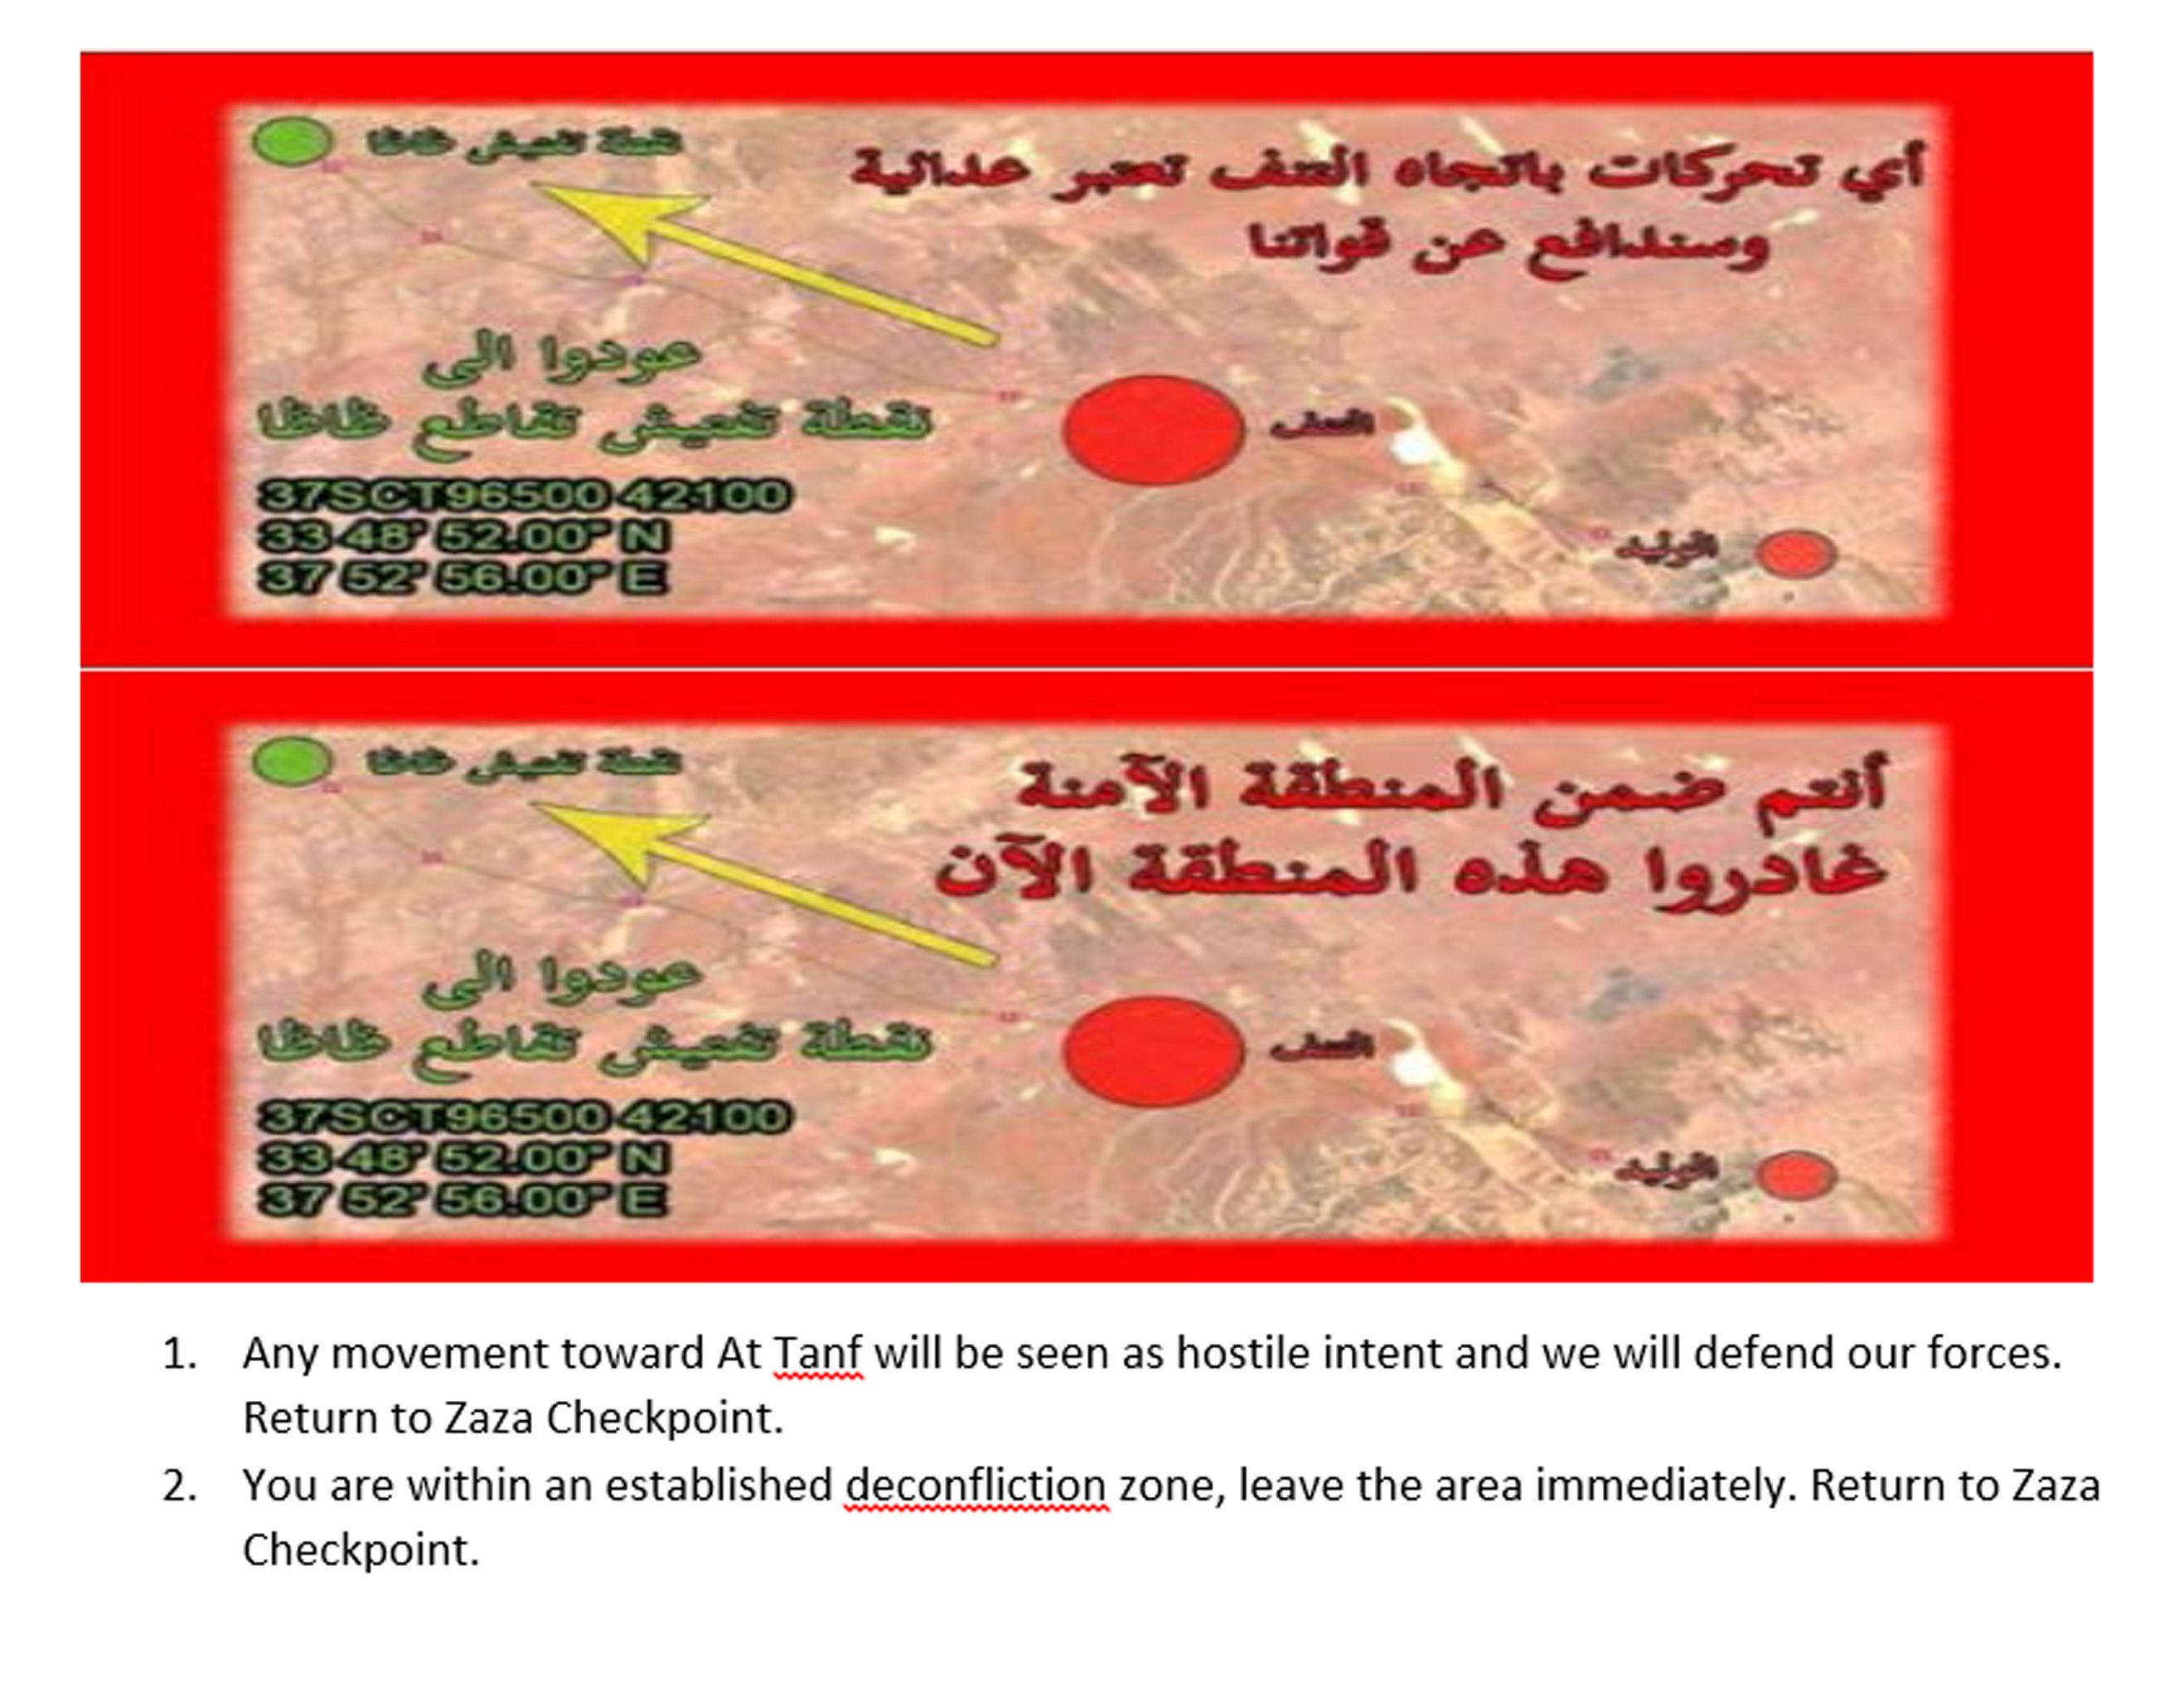 A copy of leaflets, with English-language translation, that were dropped by the U.S. military in southern Syria in recent days to advise Iran-backed forces to depart an area near a garrison used by U.S. and U.S.-backed forces as tensions mount are shown in this handout provided June 1, 2017. Courtesy U.S. Defense Department/Handout via REUTERS